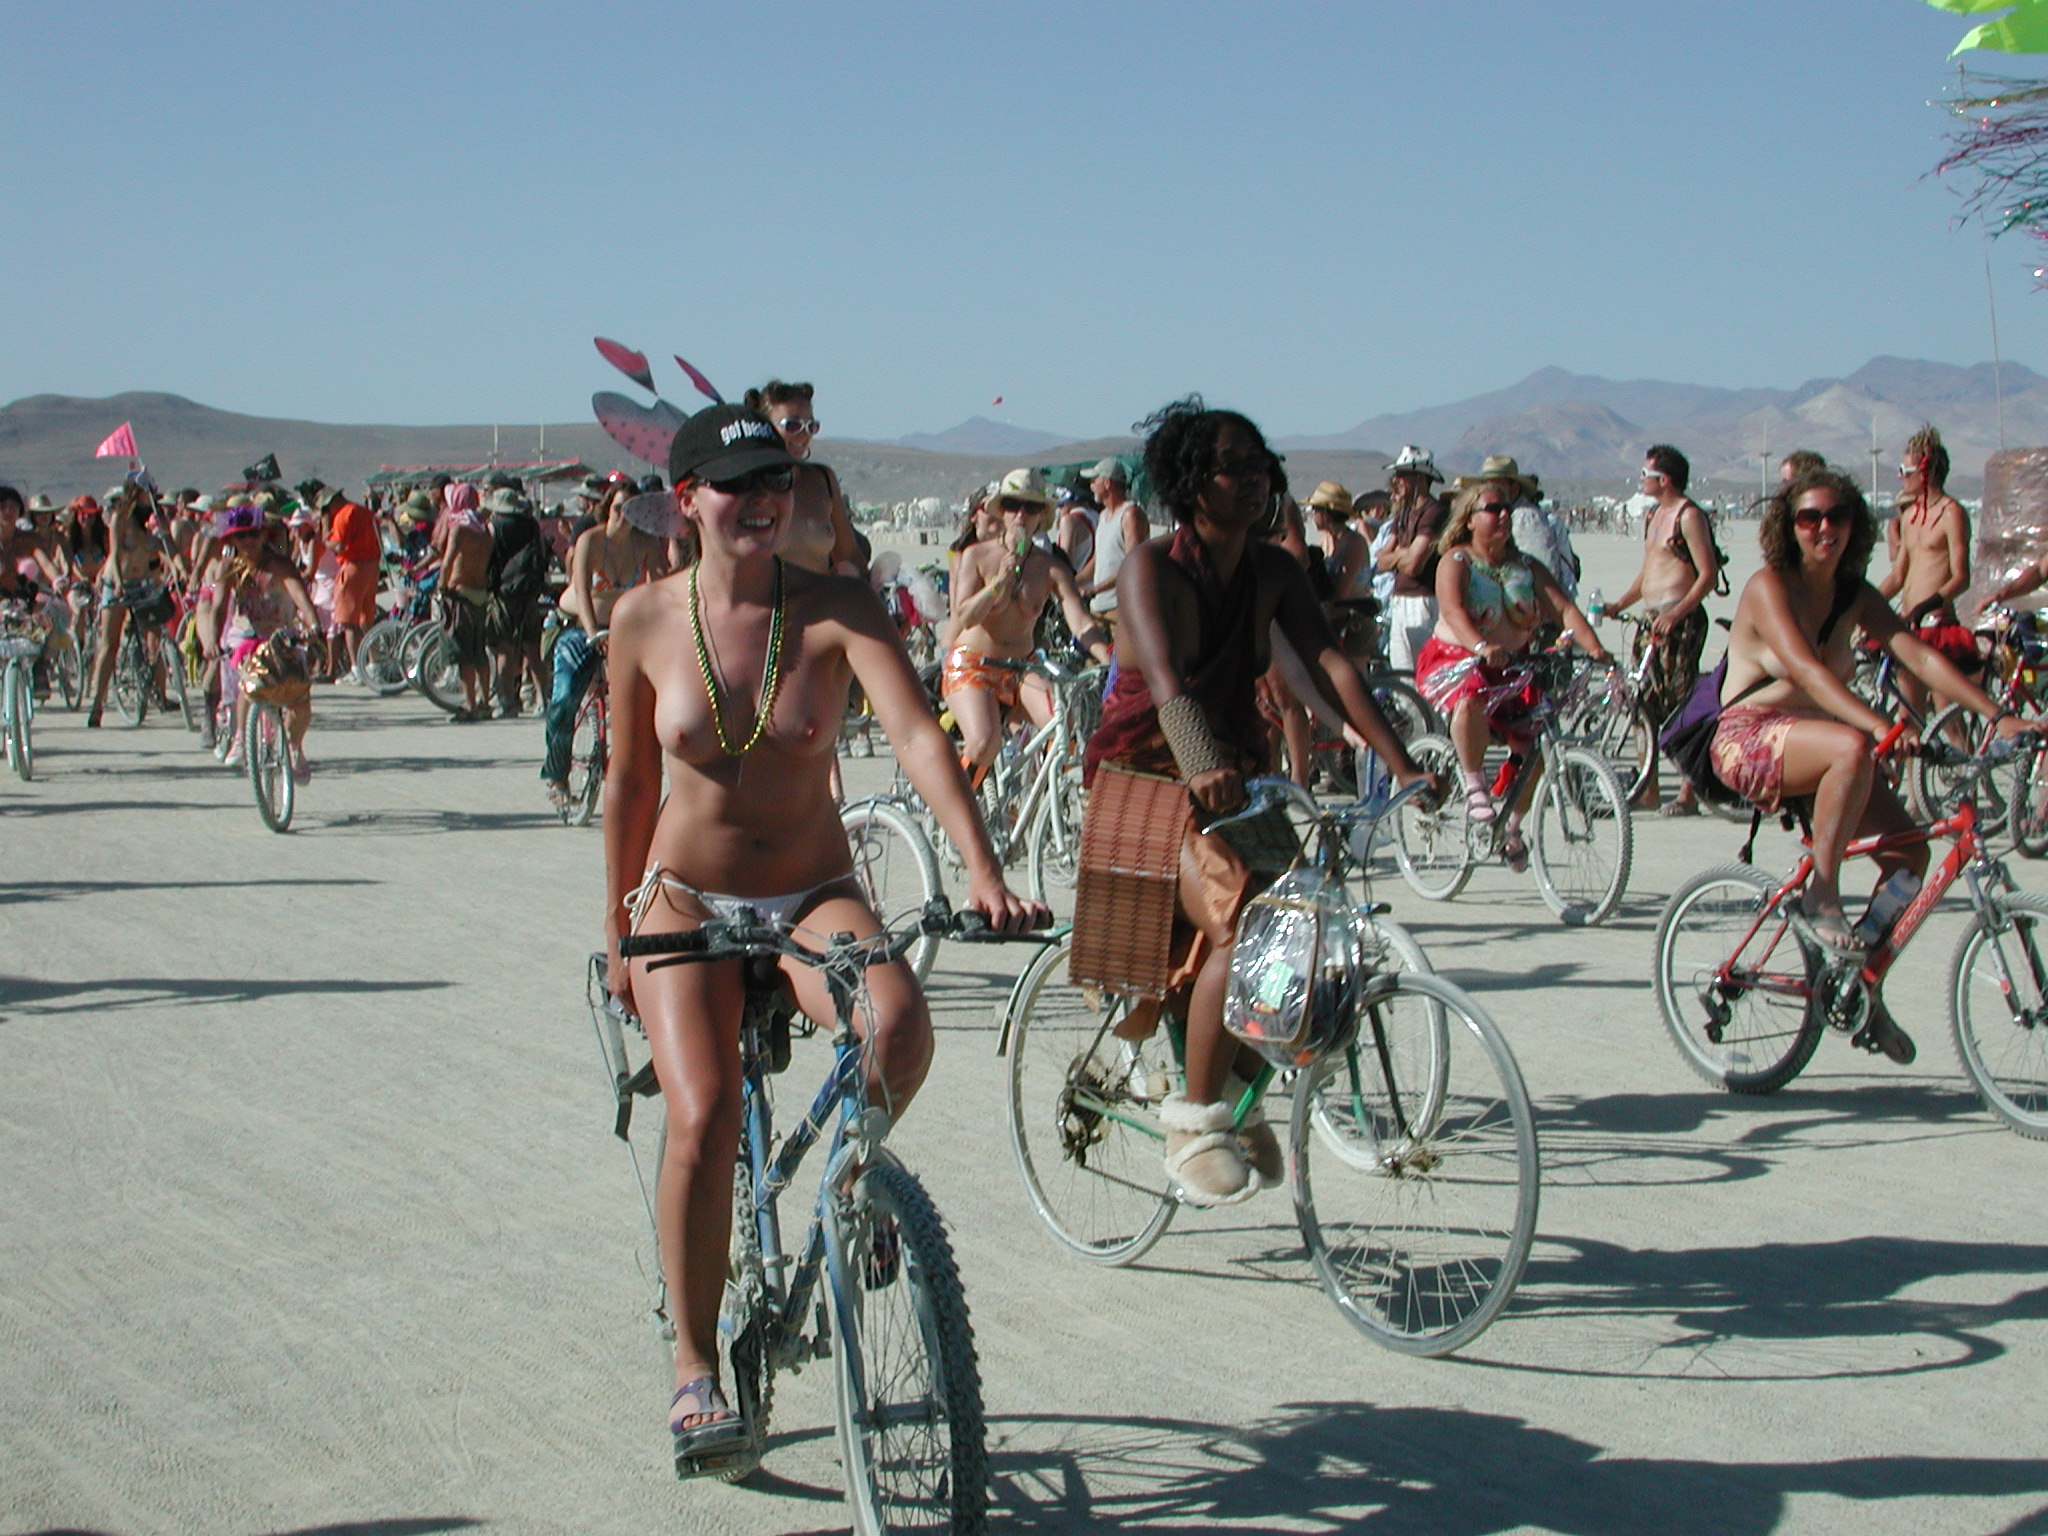 Burning man gallery naked — photo 6